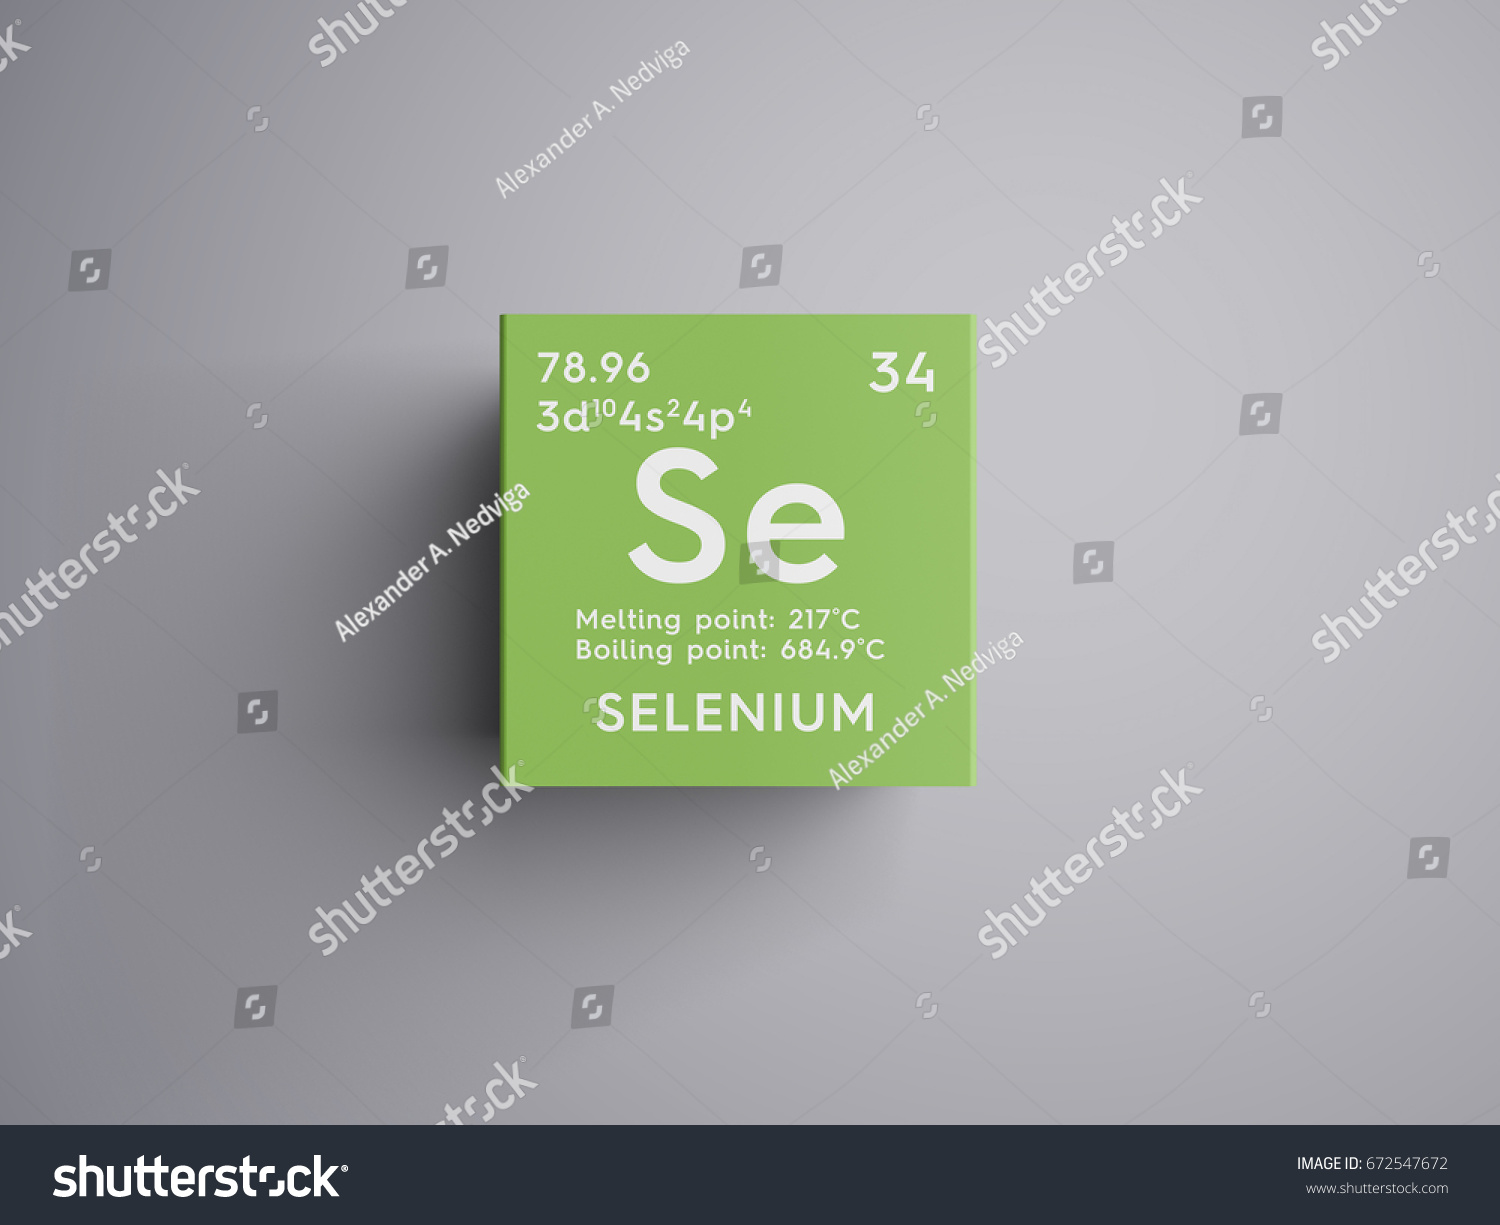 Periodic table selenium images periodic table images selenium other nonmetals chemical element mendeleevs stock selenium other nonmetals chemical element of mendeleevs periodic table gamestrikefo Images